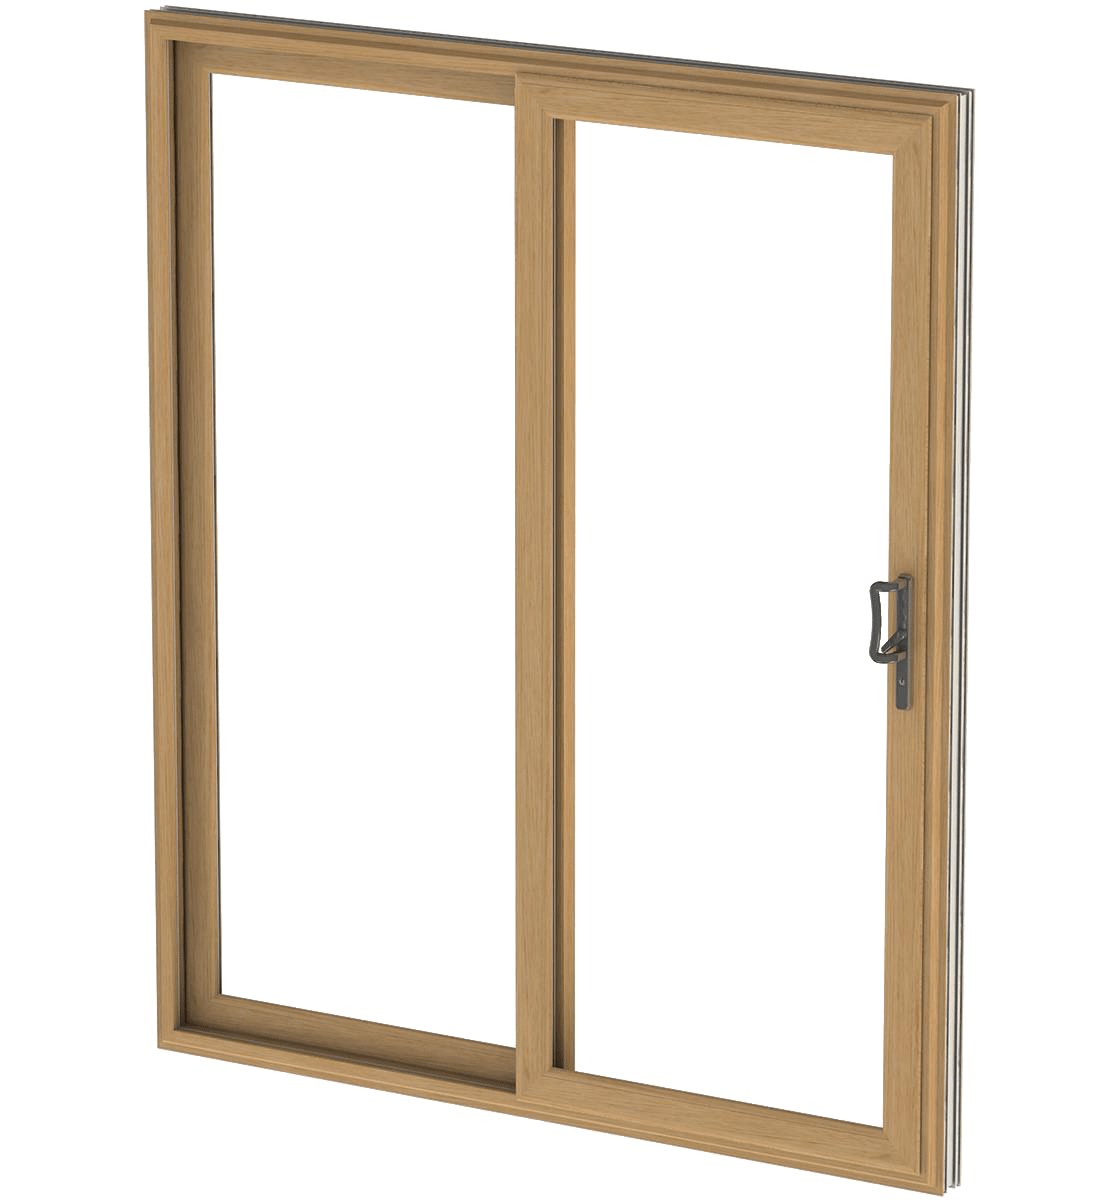 Upvc Patio Doors Fleet Sliding Patio Doors Prices